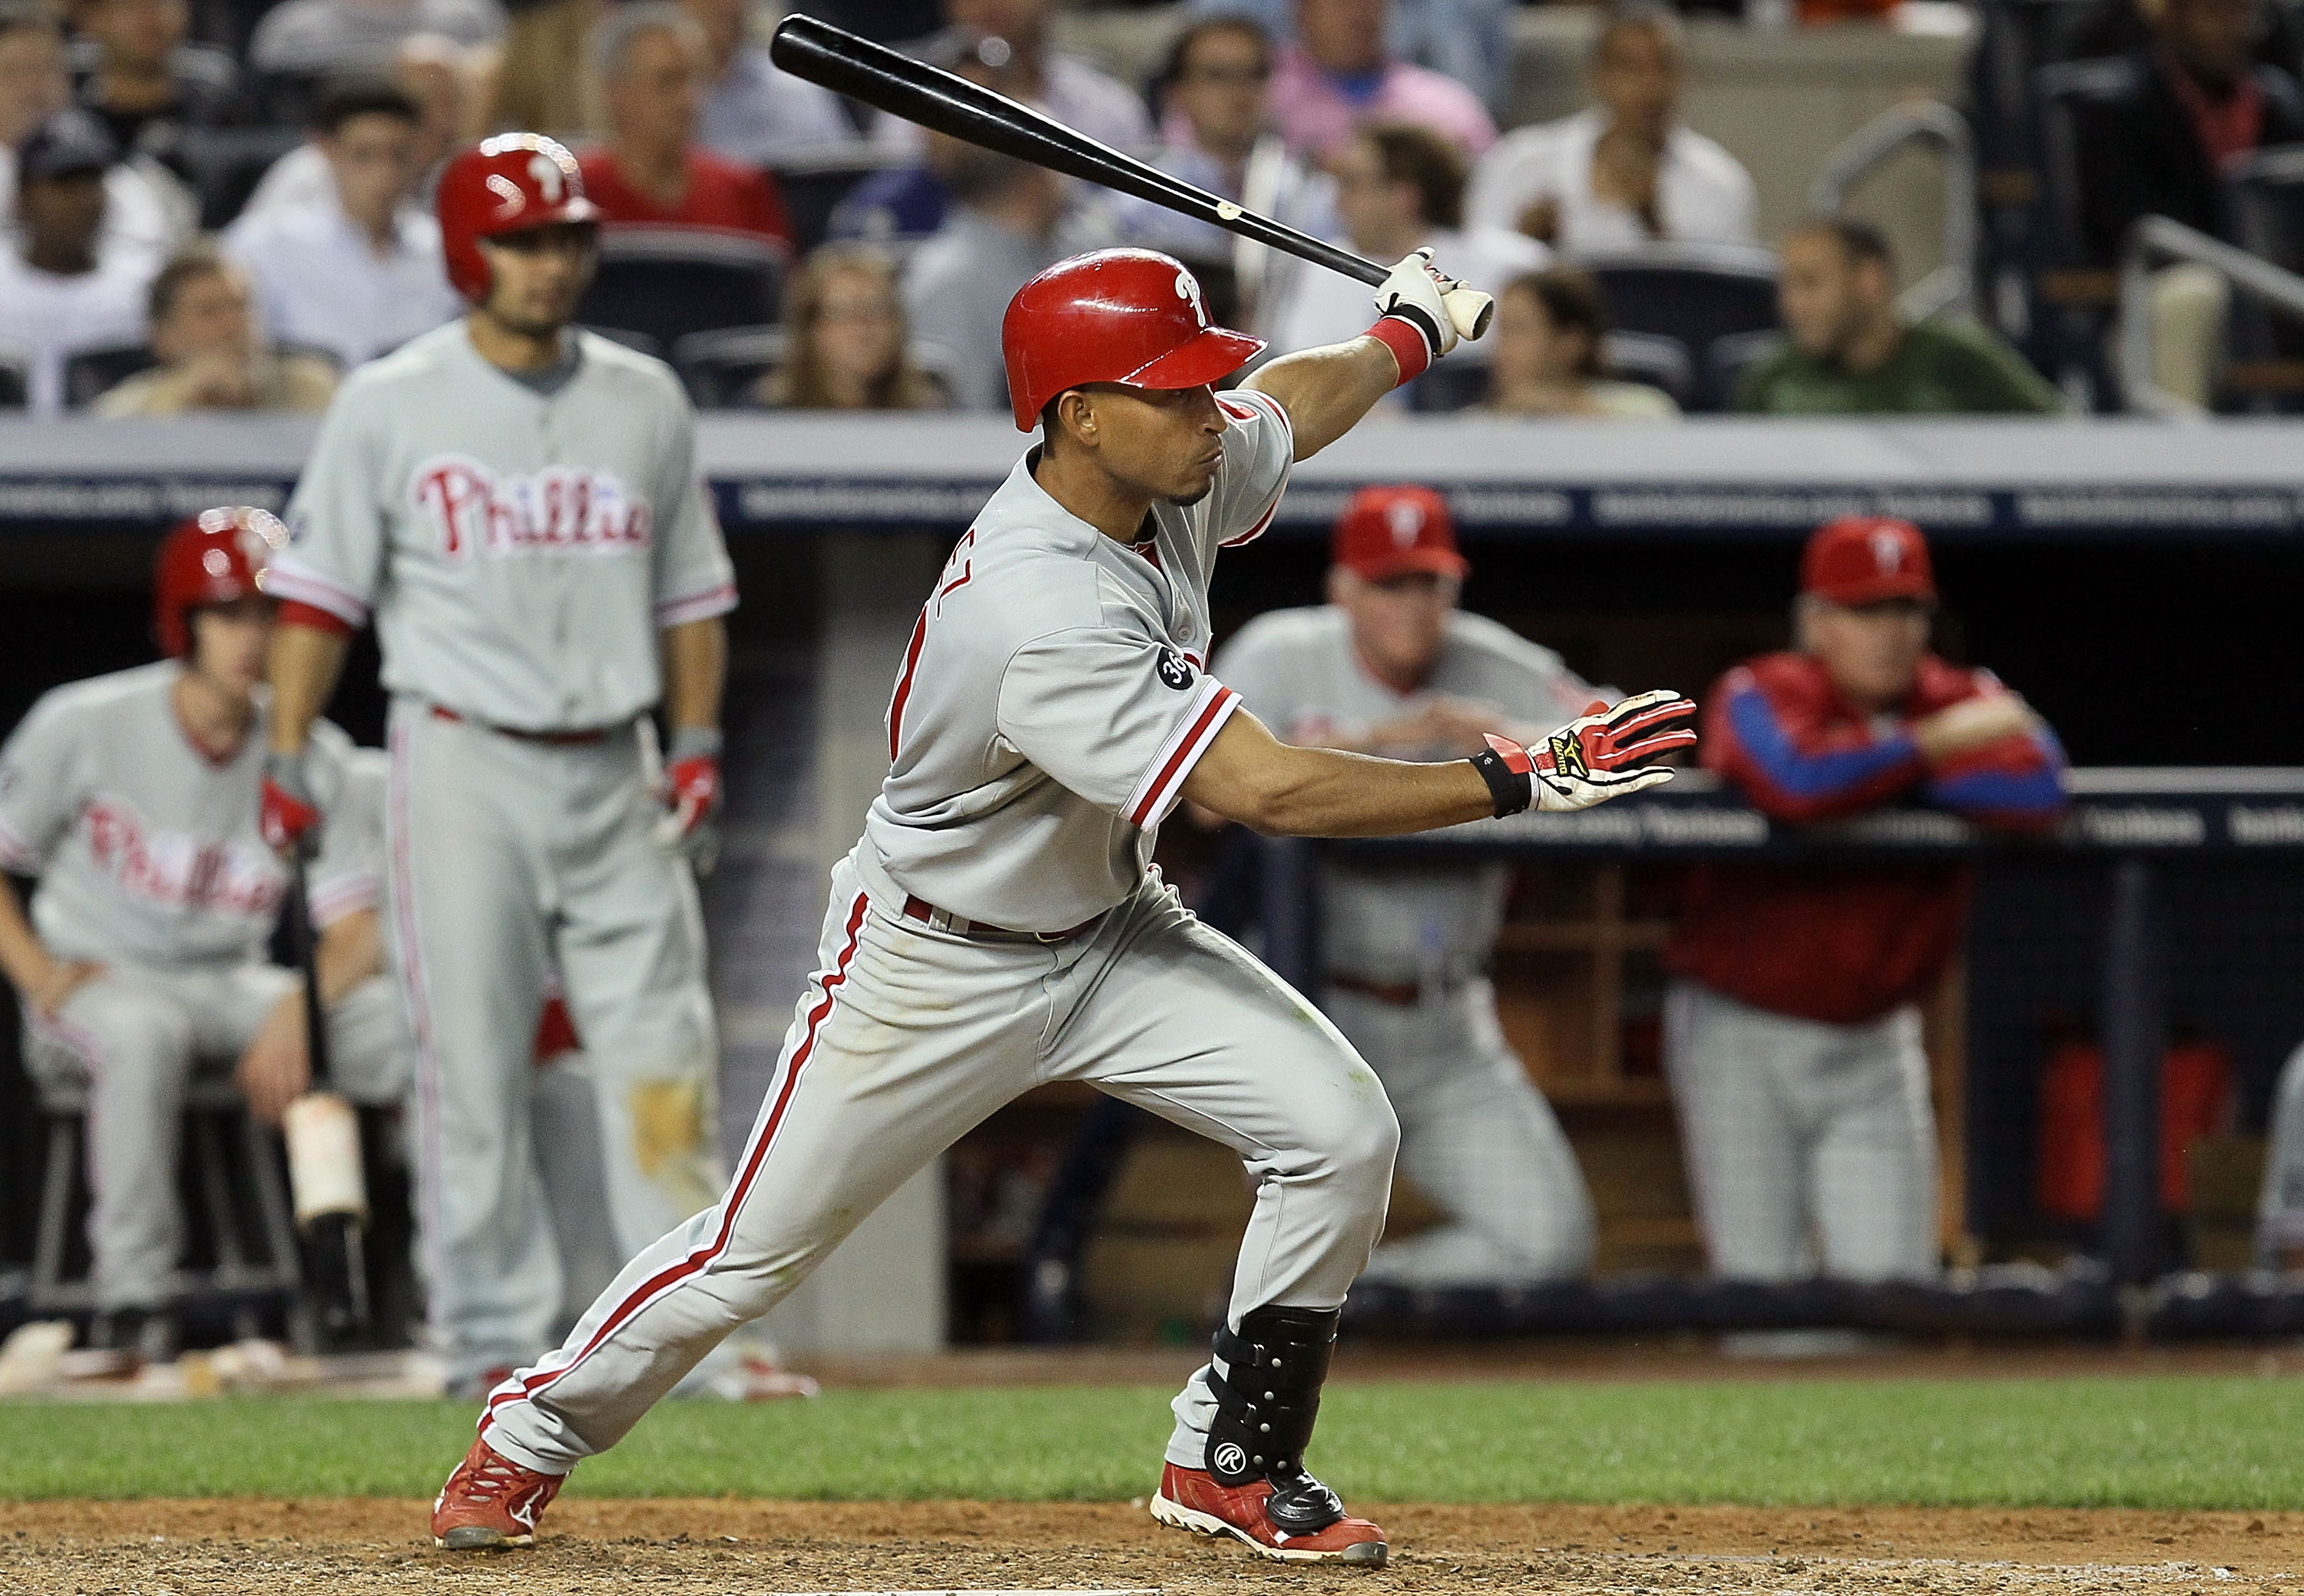 NEW YORK - JUNE 17:  Wilson Valdez #21 of the Philadelphia Phillies follows through on a RBI single in the ninth inning against the New York Yankees on June 17, 2010 at Yankee Stadium in the Bronx borough of New York City. The Phillies defeated the Yankee